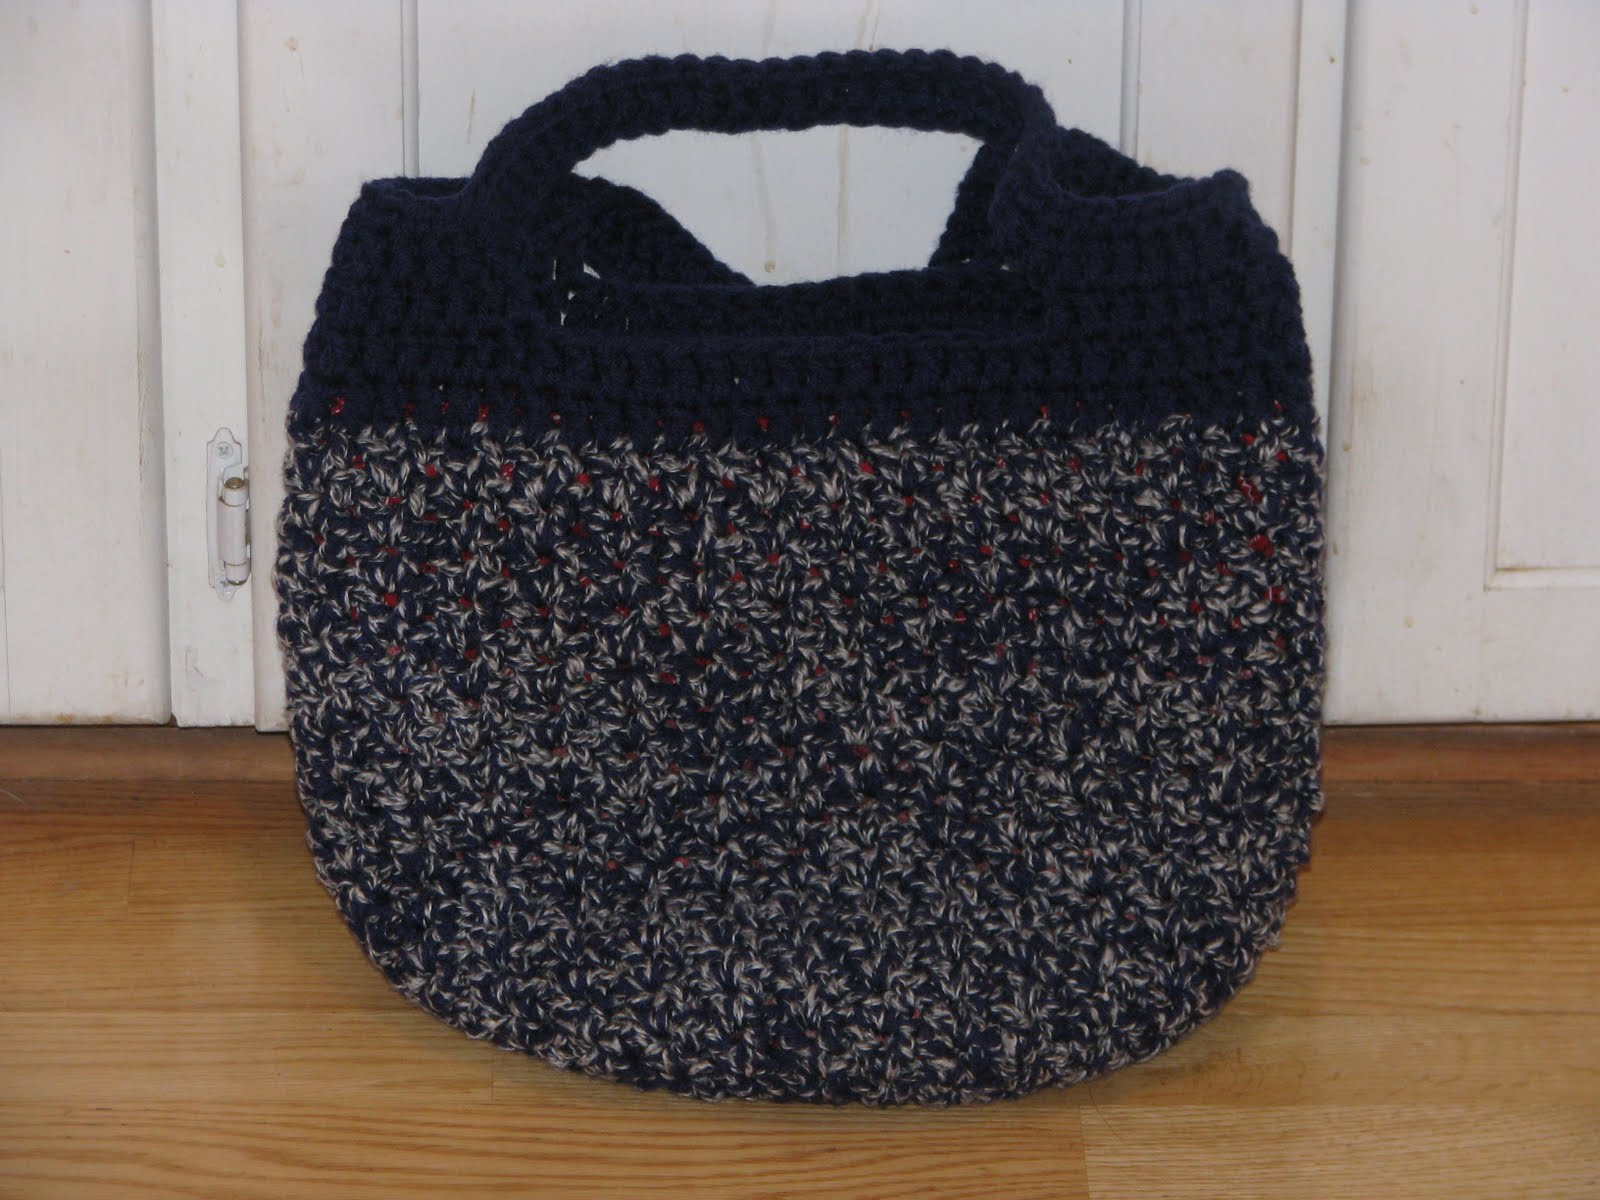 Craft Attic Resources: Bag Patterns Crochet, Knit, and Loom